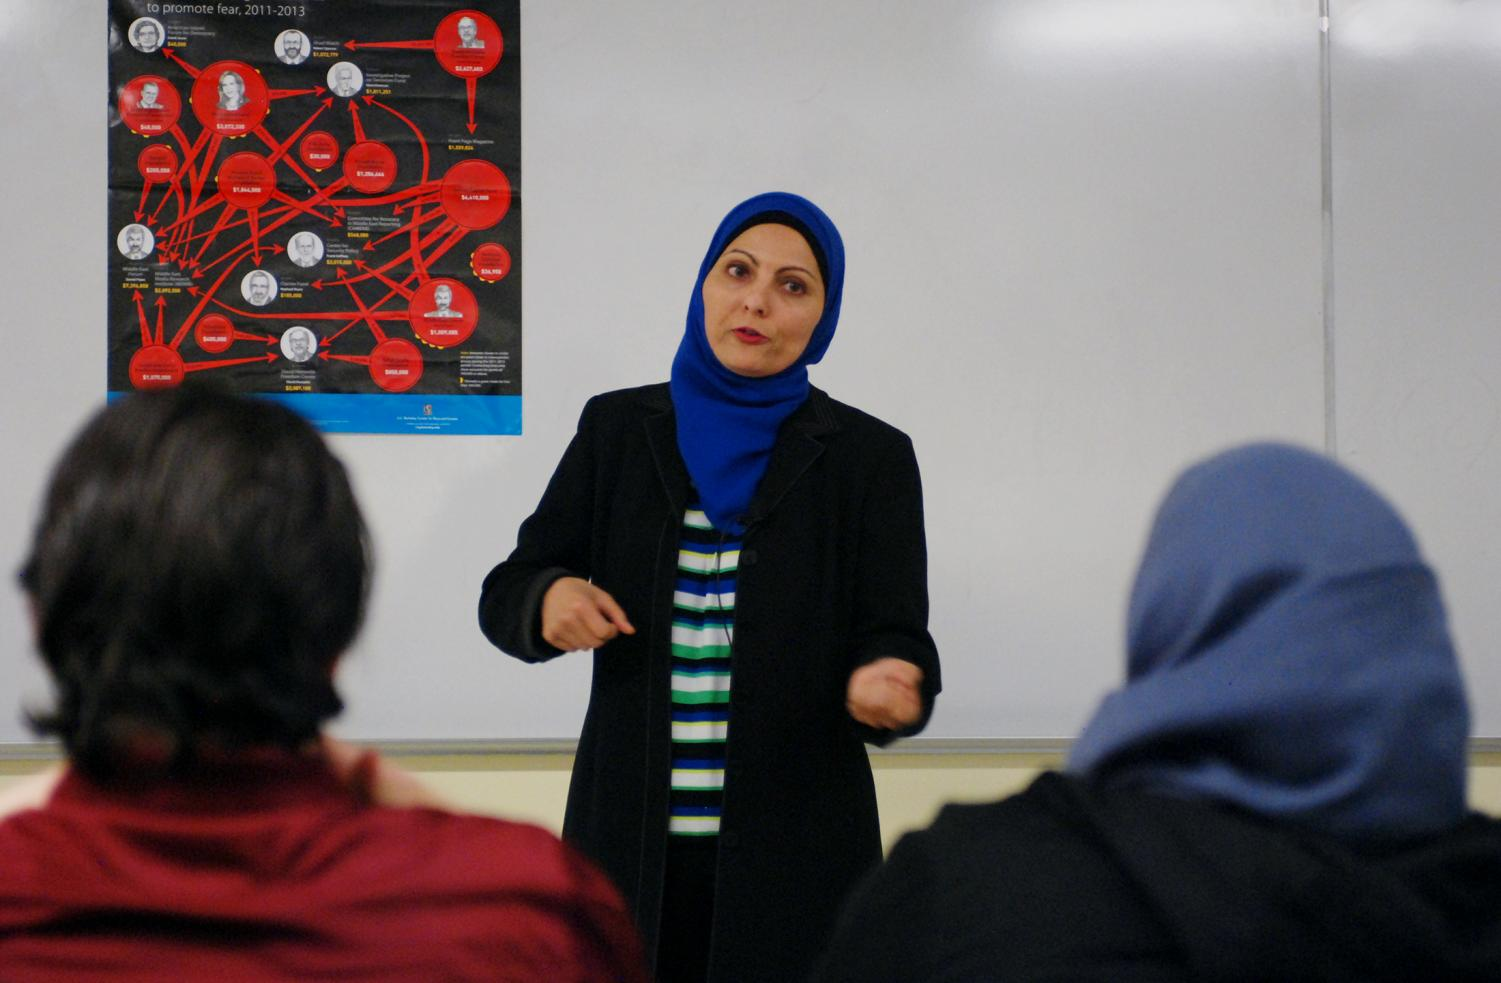 Aneelah Afzali speaks about Islamophobia and media portrayal of Muslims on Friday in Todd Hall.